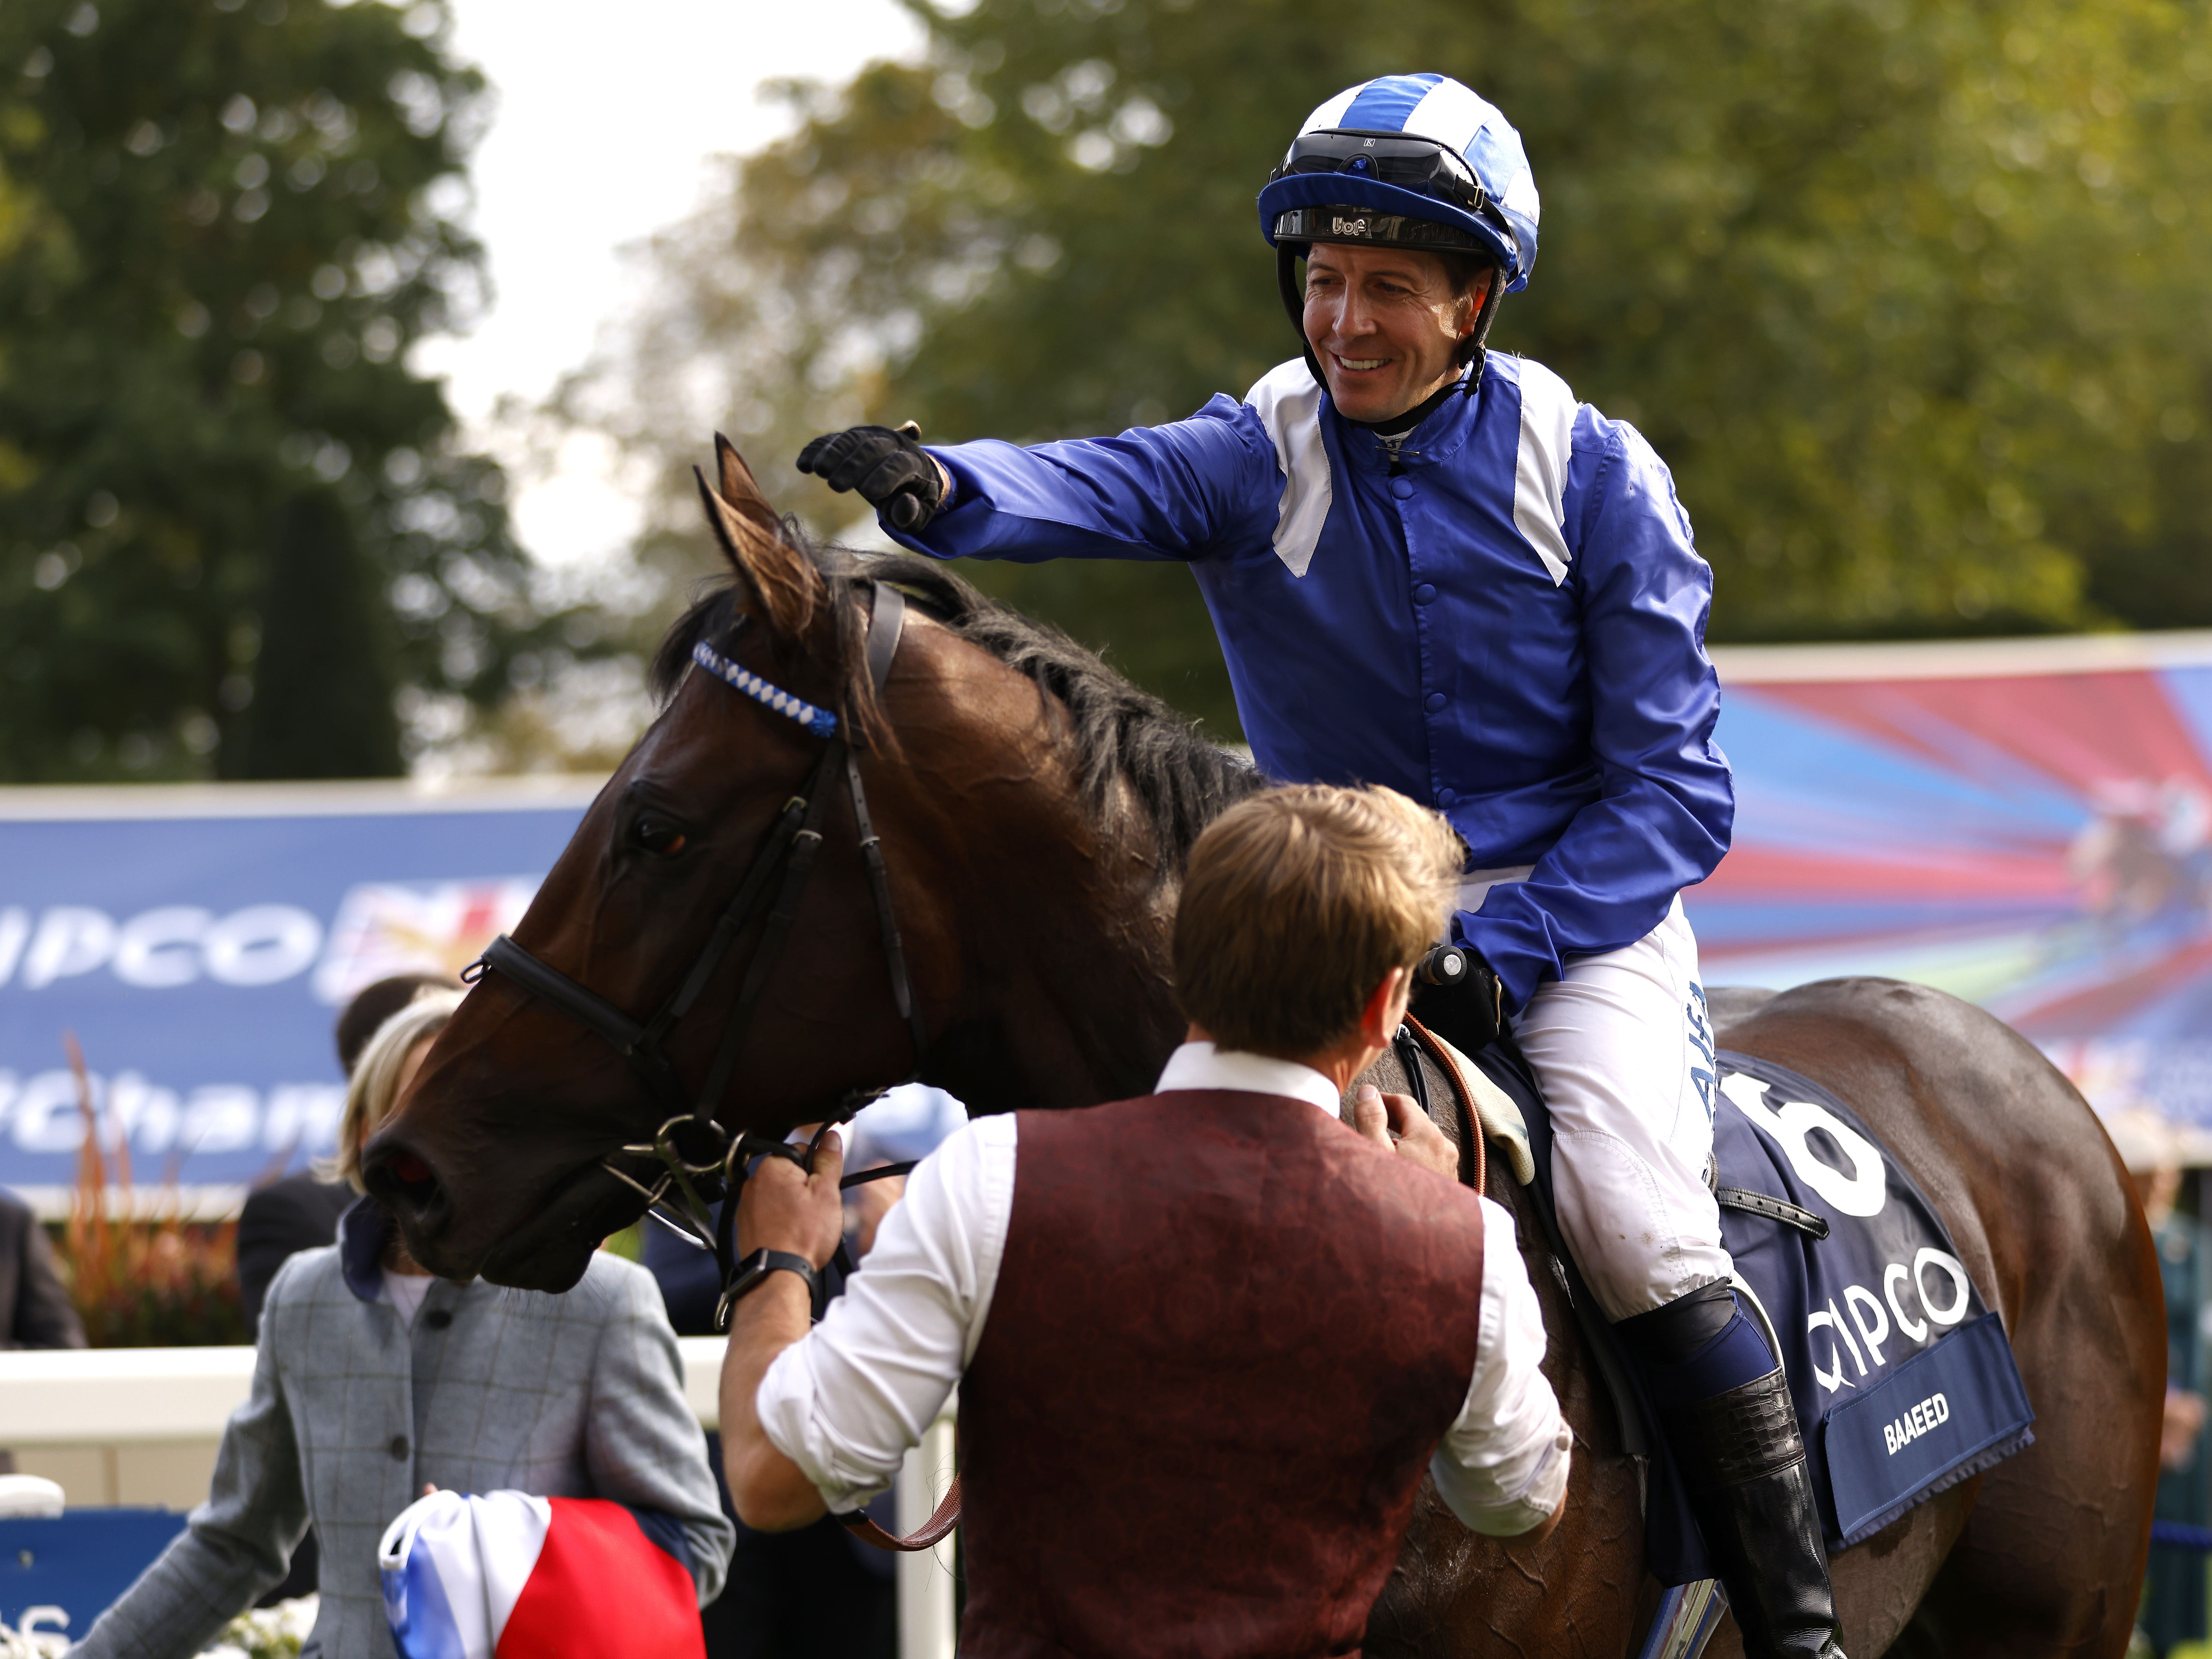 Jockey Jim Crowley celebrates with Baaeed after winning the Queen Elizabeth II Stakes (Sponsored by Qipco) during the Qipco British Champions Day at Ascot Racecourse (Steven Paston/PA)